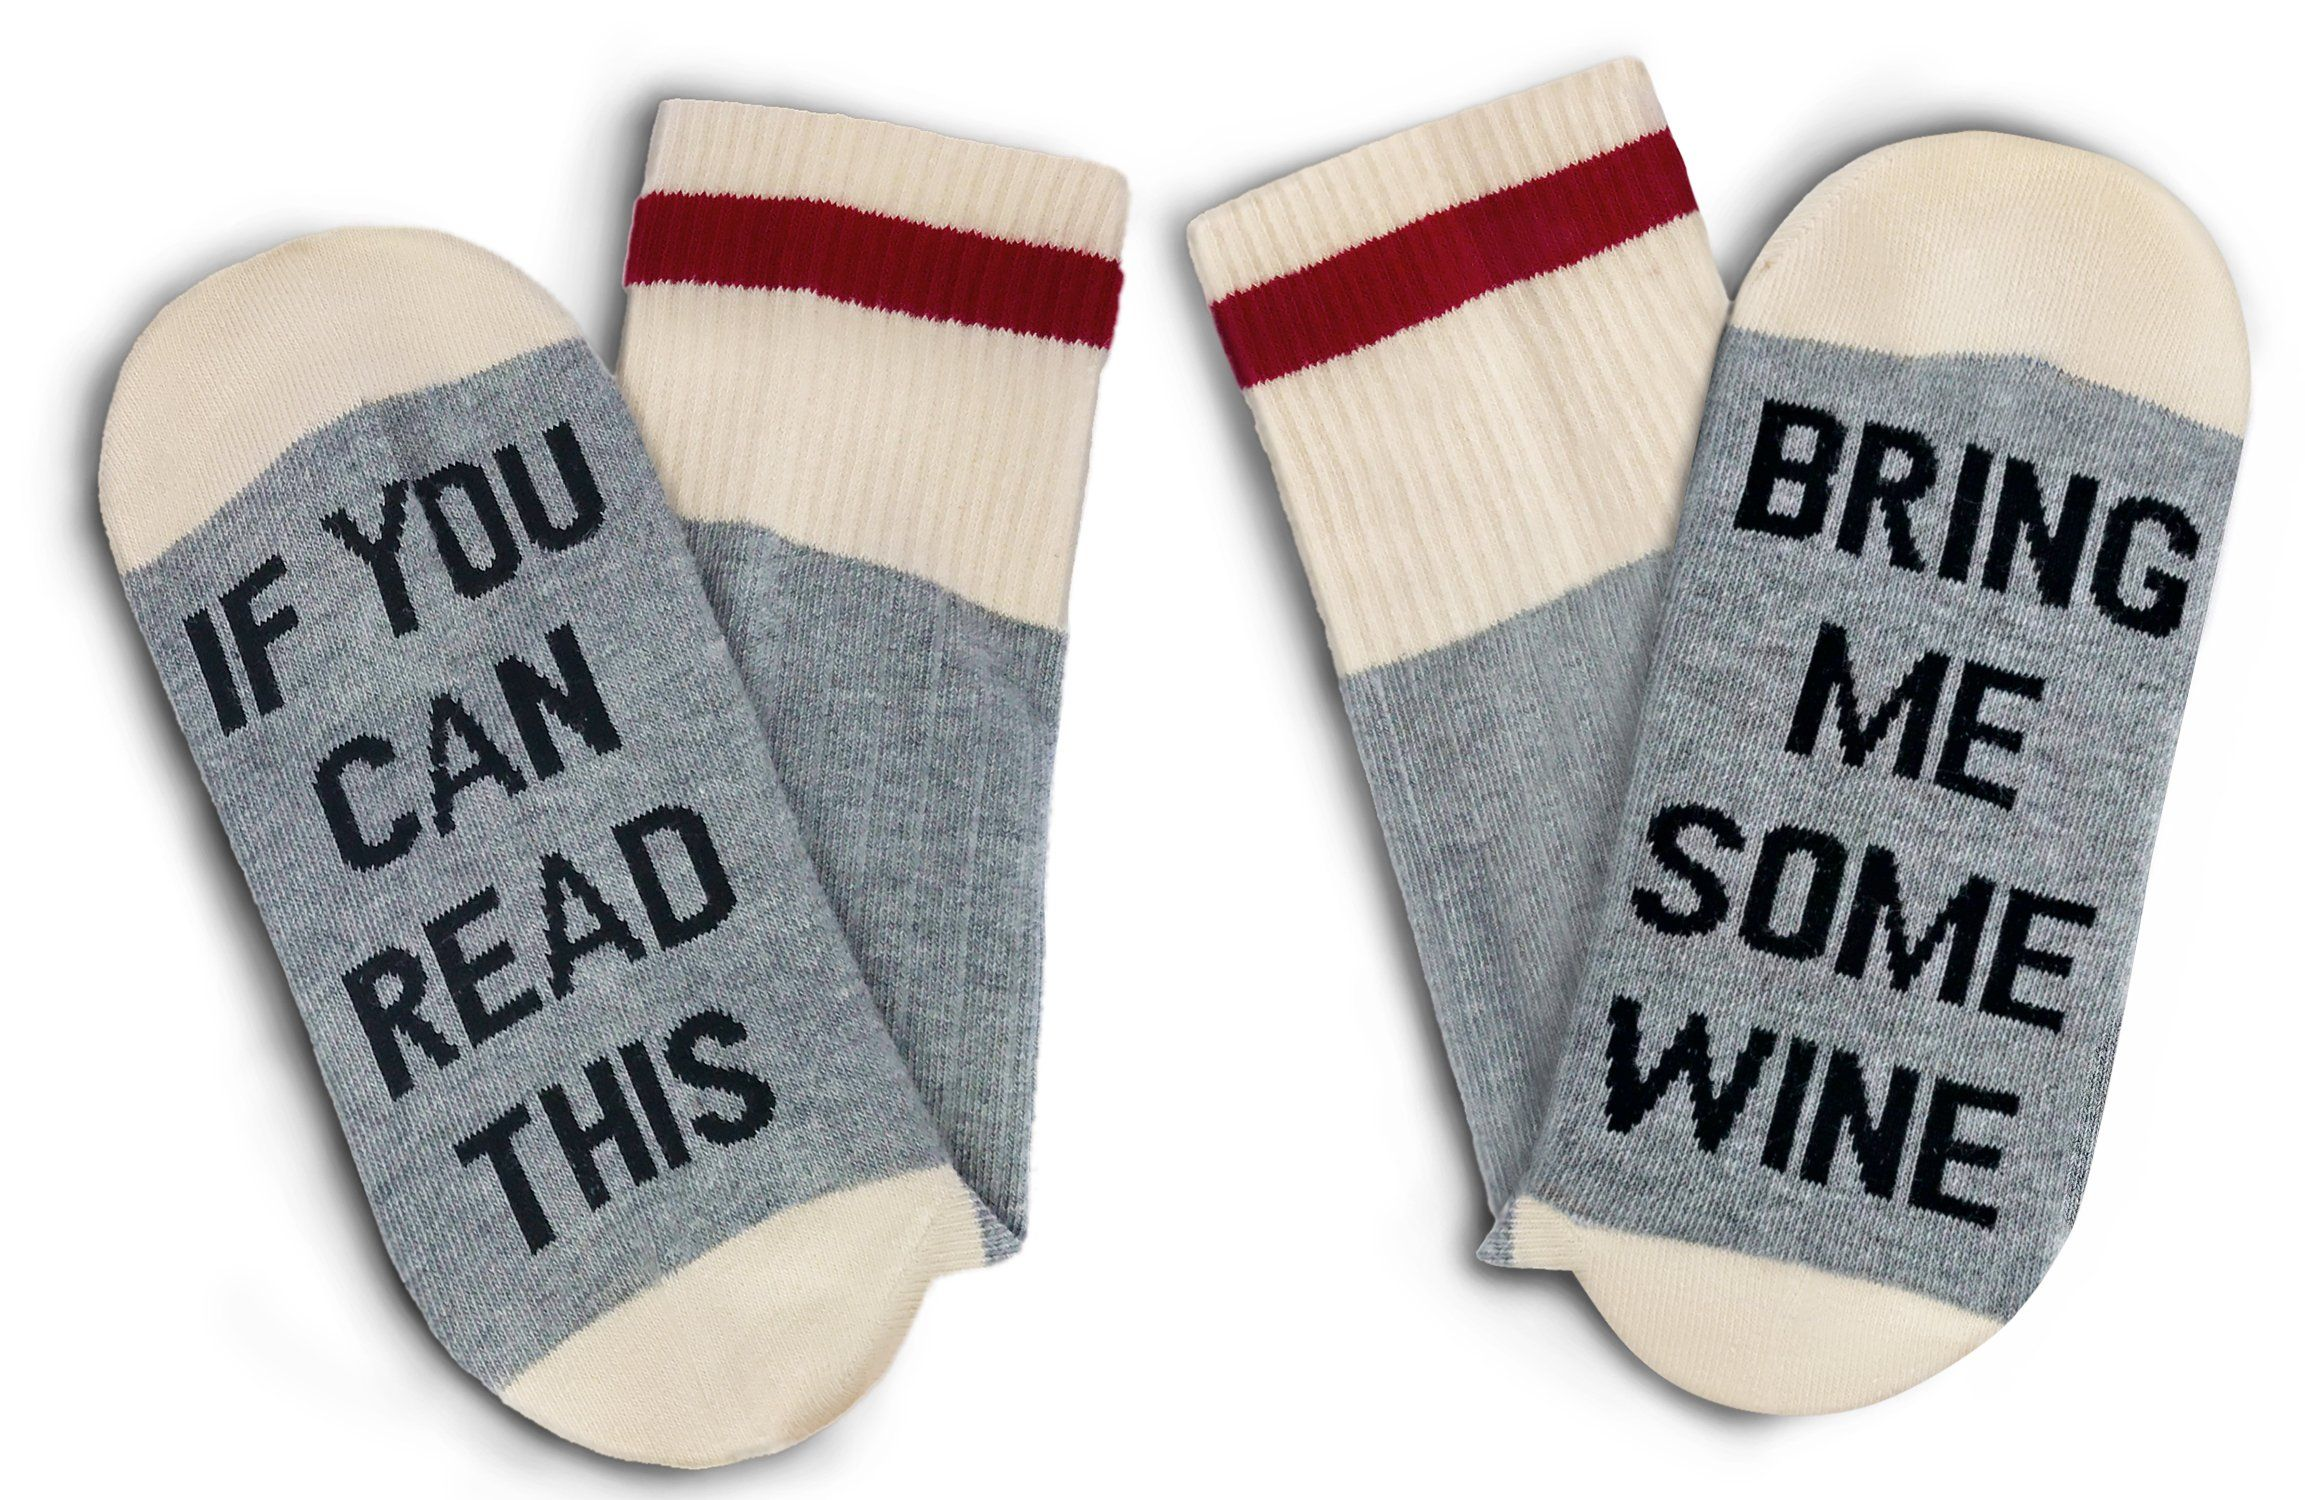 Christmas Gifts For Mom Socks A Best Gifts For Mom Stocking Stuffers For Women Gift For Stocking Stuffers For Mom Christmas Gifts For Mom Best Gifts For Mom